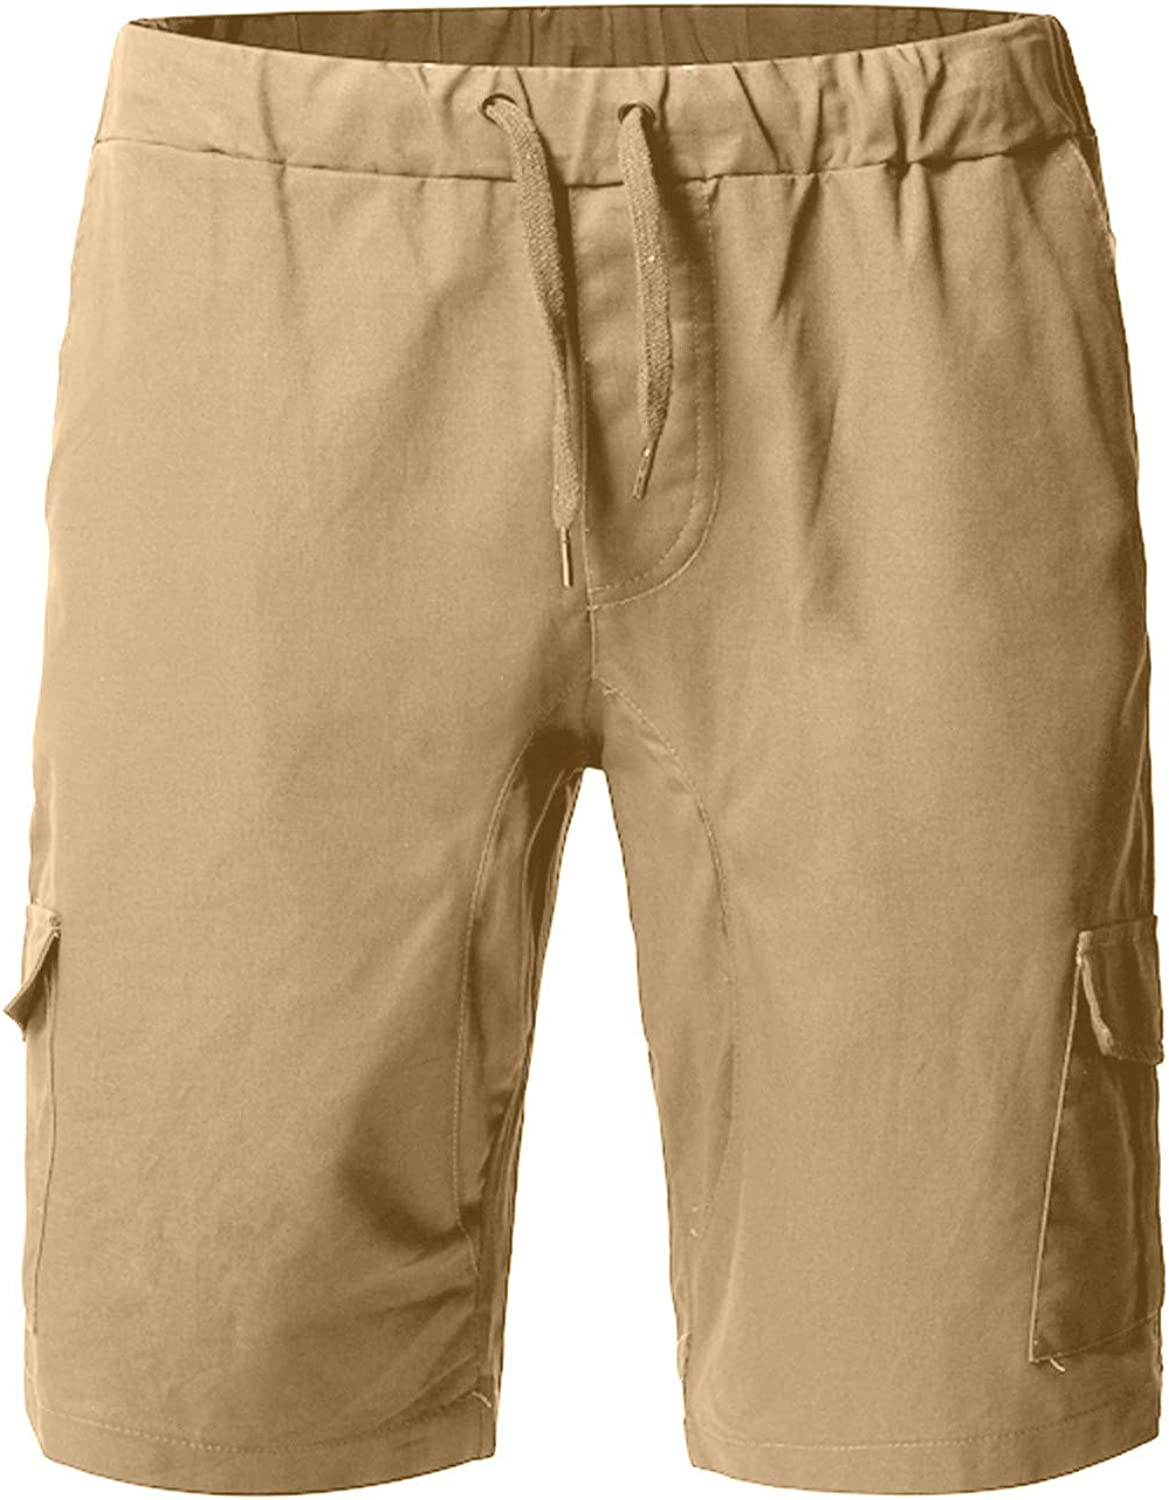 CLEEYYS Shorts for Men with Pockets Mens Shorts Elastic Waist with Drawstring Casual Summer Slim Fit